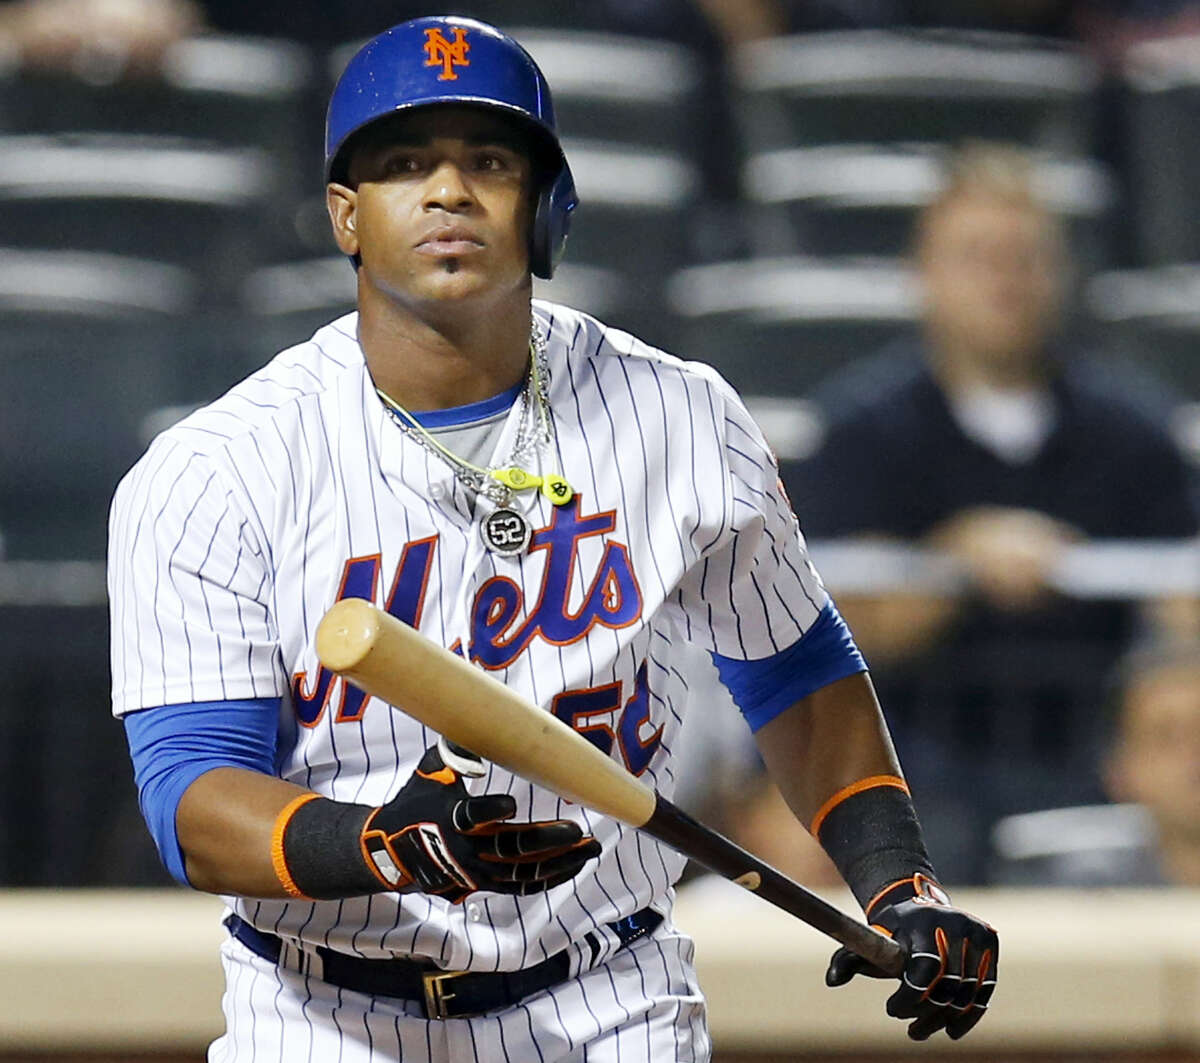 Yoenis Cespedes has opted out of the remaining two years of his contract with the Mets.